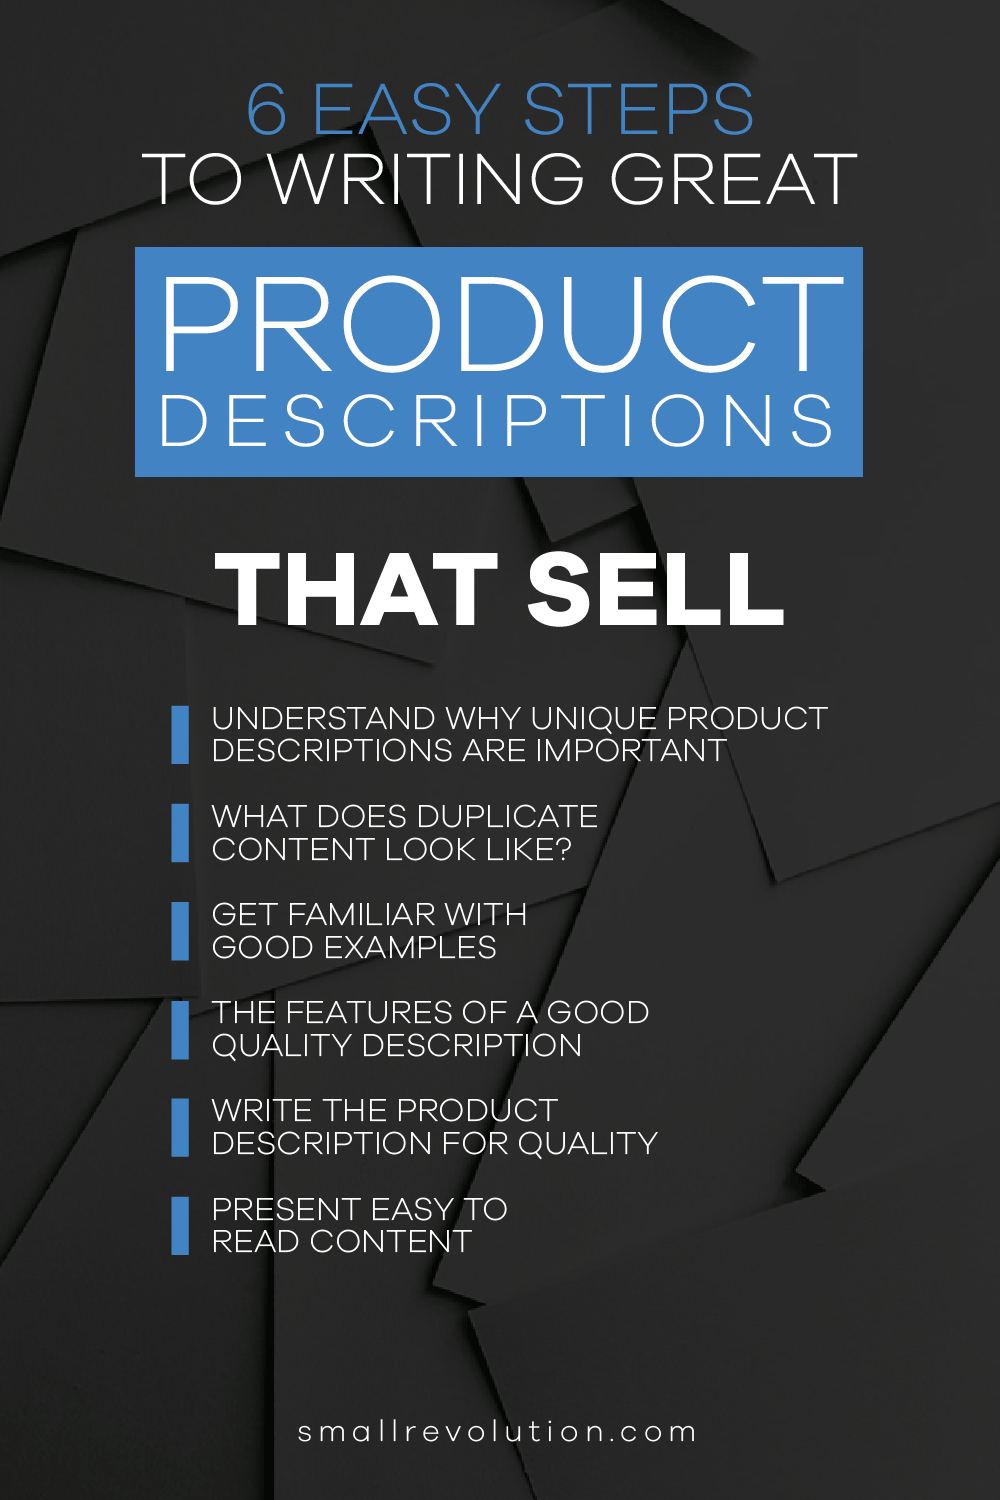 8 Easy Steps to Writing Great Product Descriptions That Sell